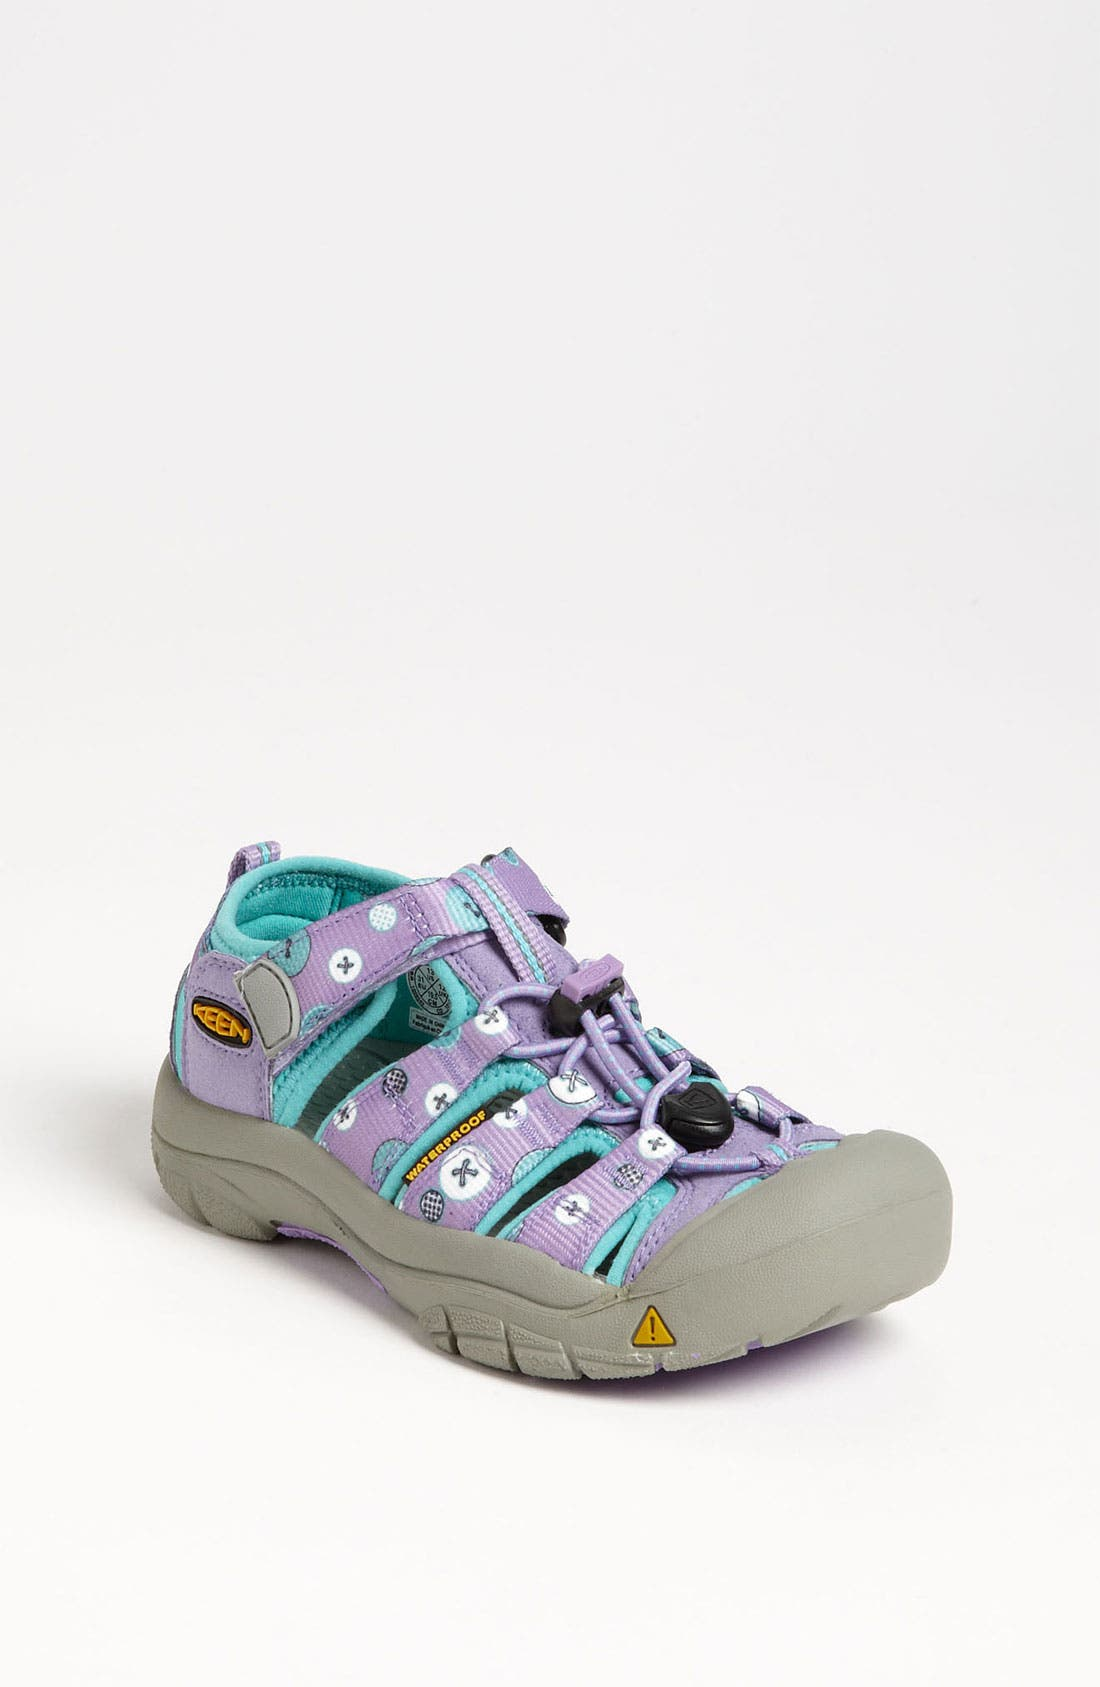 Alternate Image 1 Selected - Keen 'Newport H2' Sandal (Toddler & Little Kid)